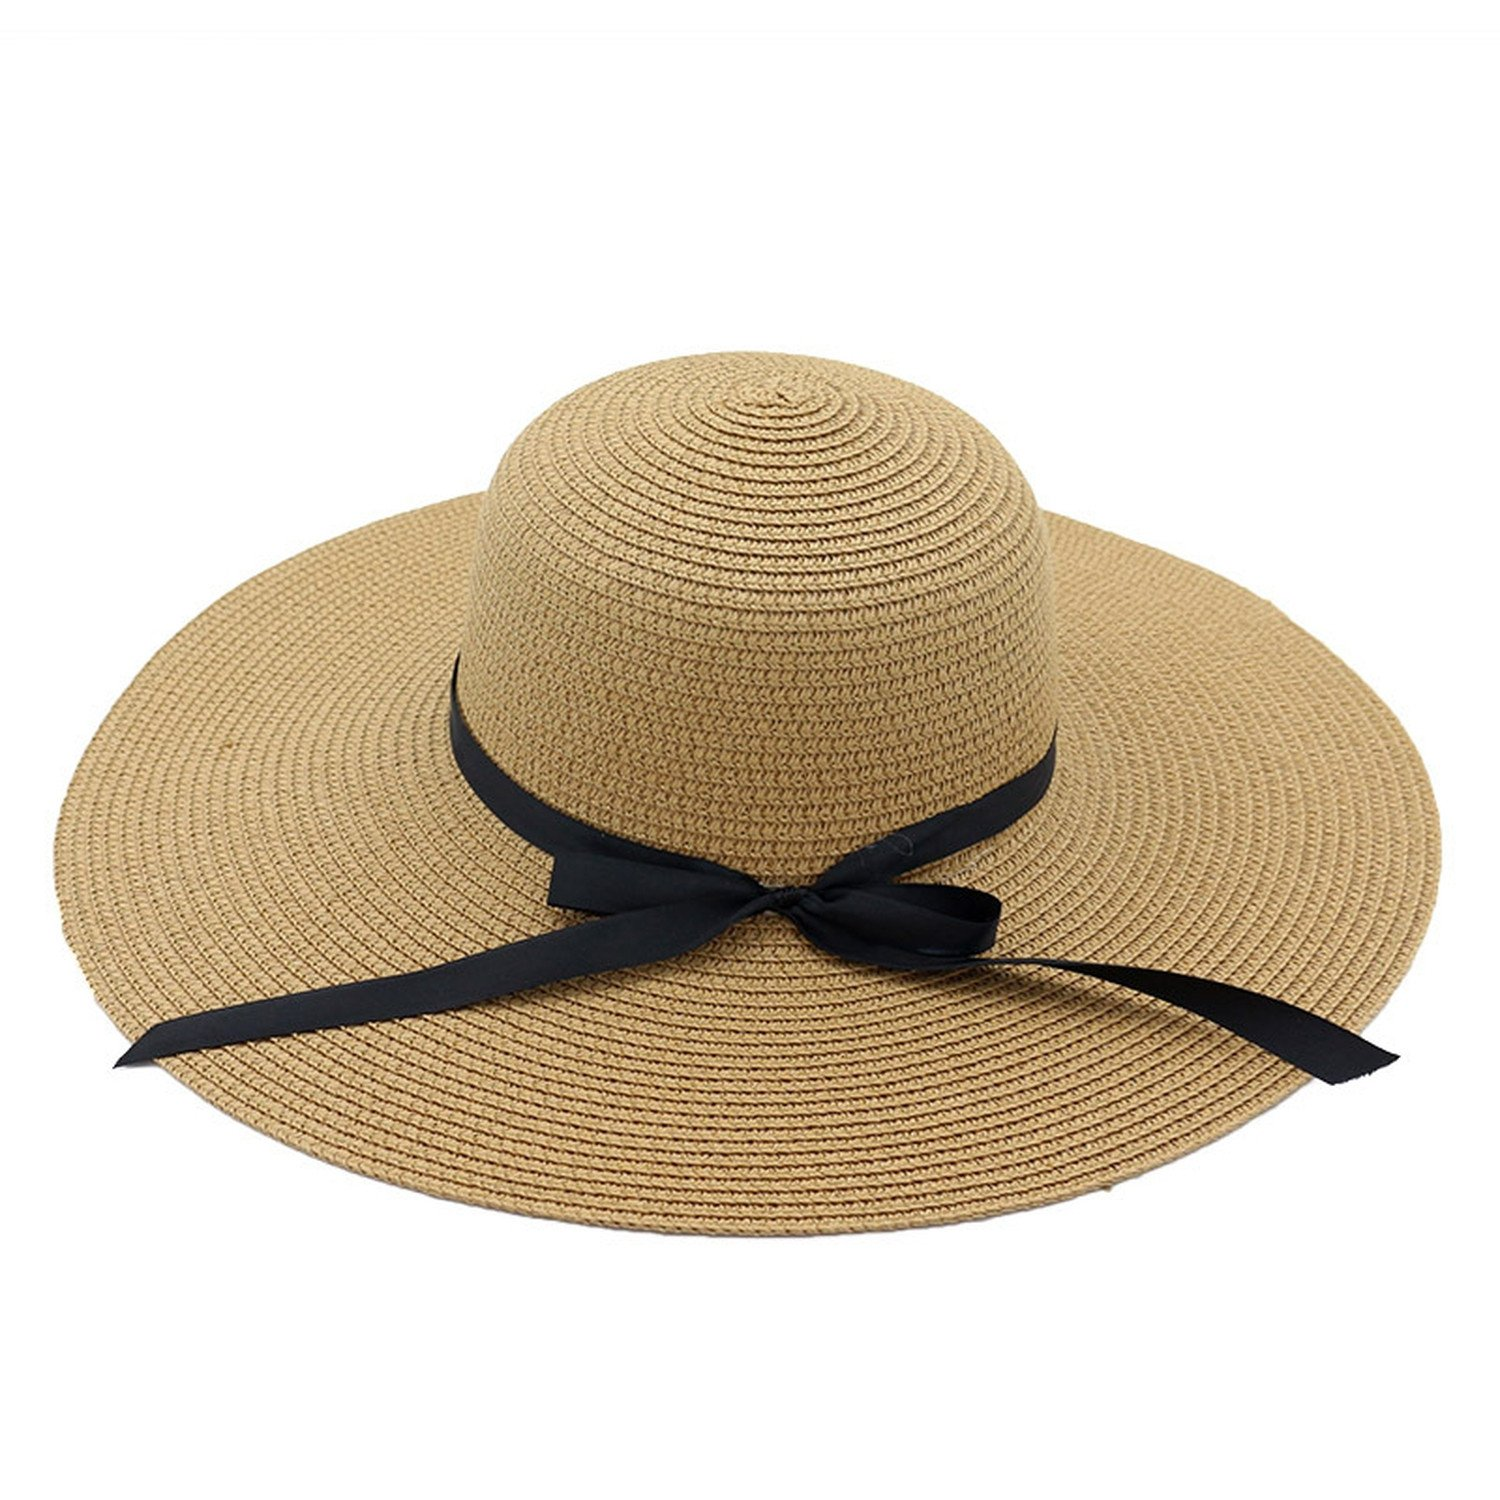 Spring and summer new hat female straw hat seaside holiday beach sun hat big hat bow bow sun hat,Khaki,adjustable